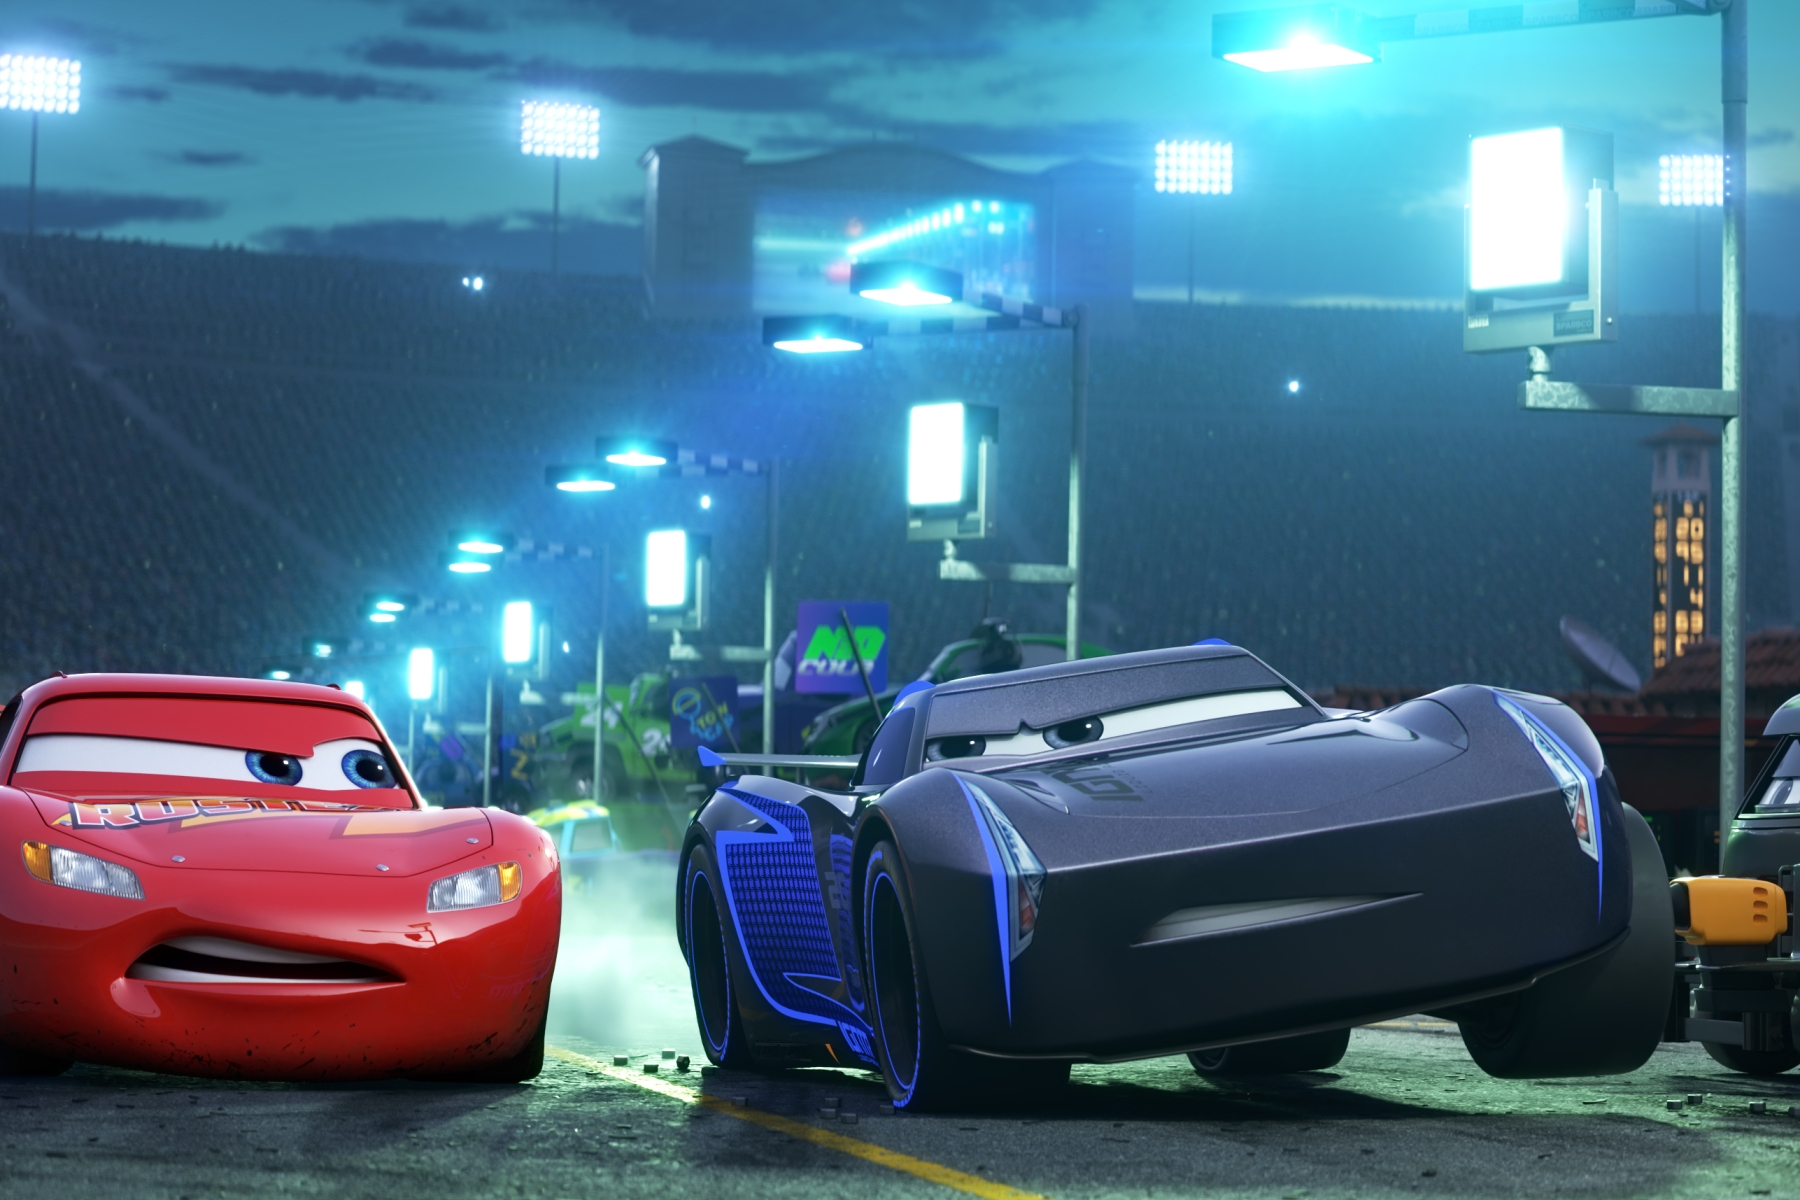 Cars 3 Finally A Cars Movie Worthy Of The Pixar Name